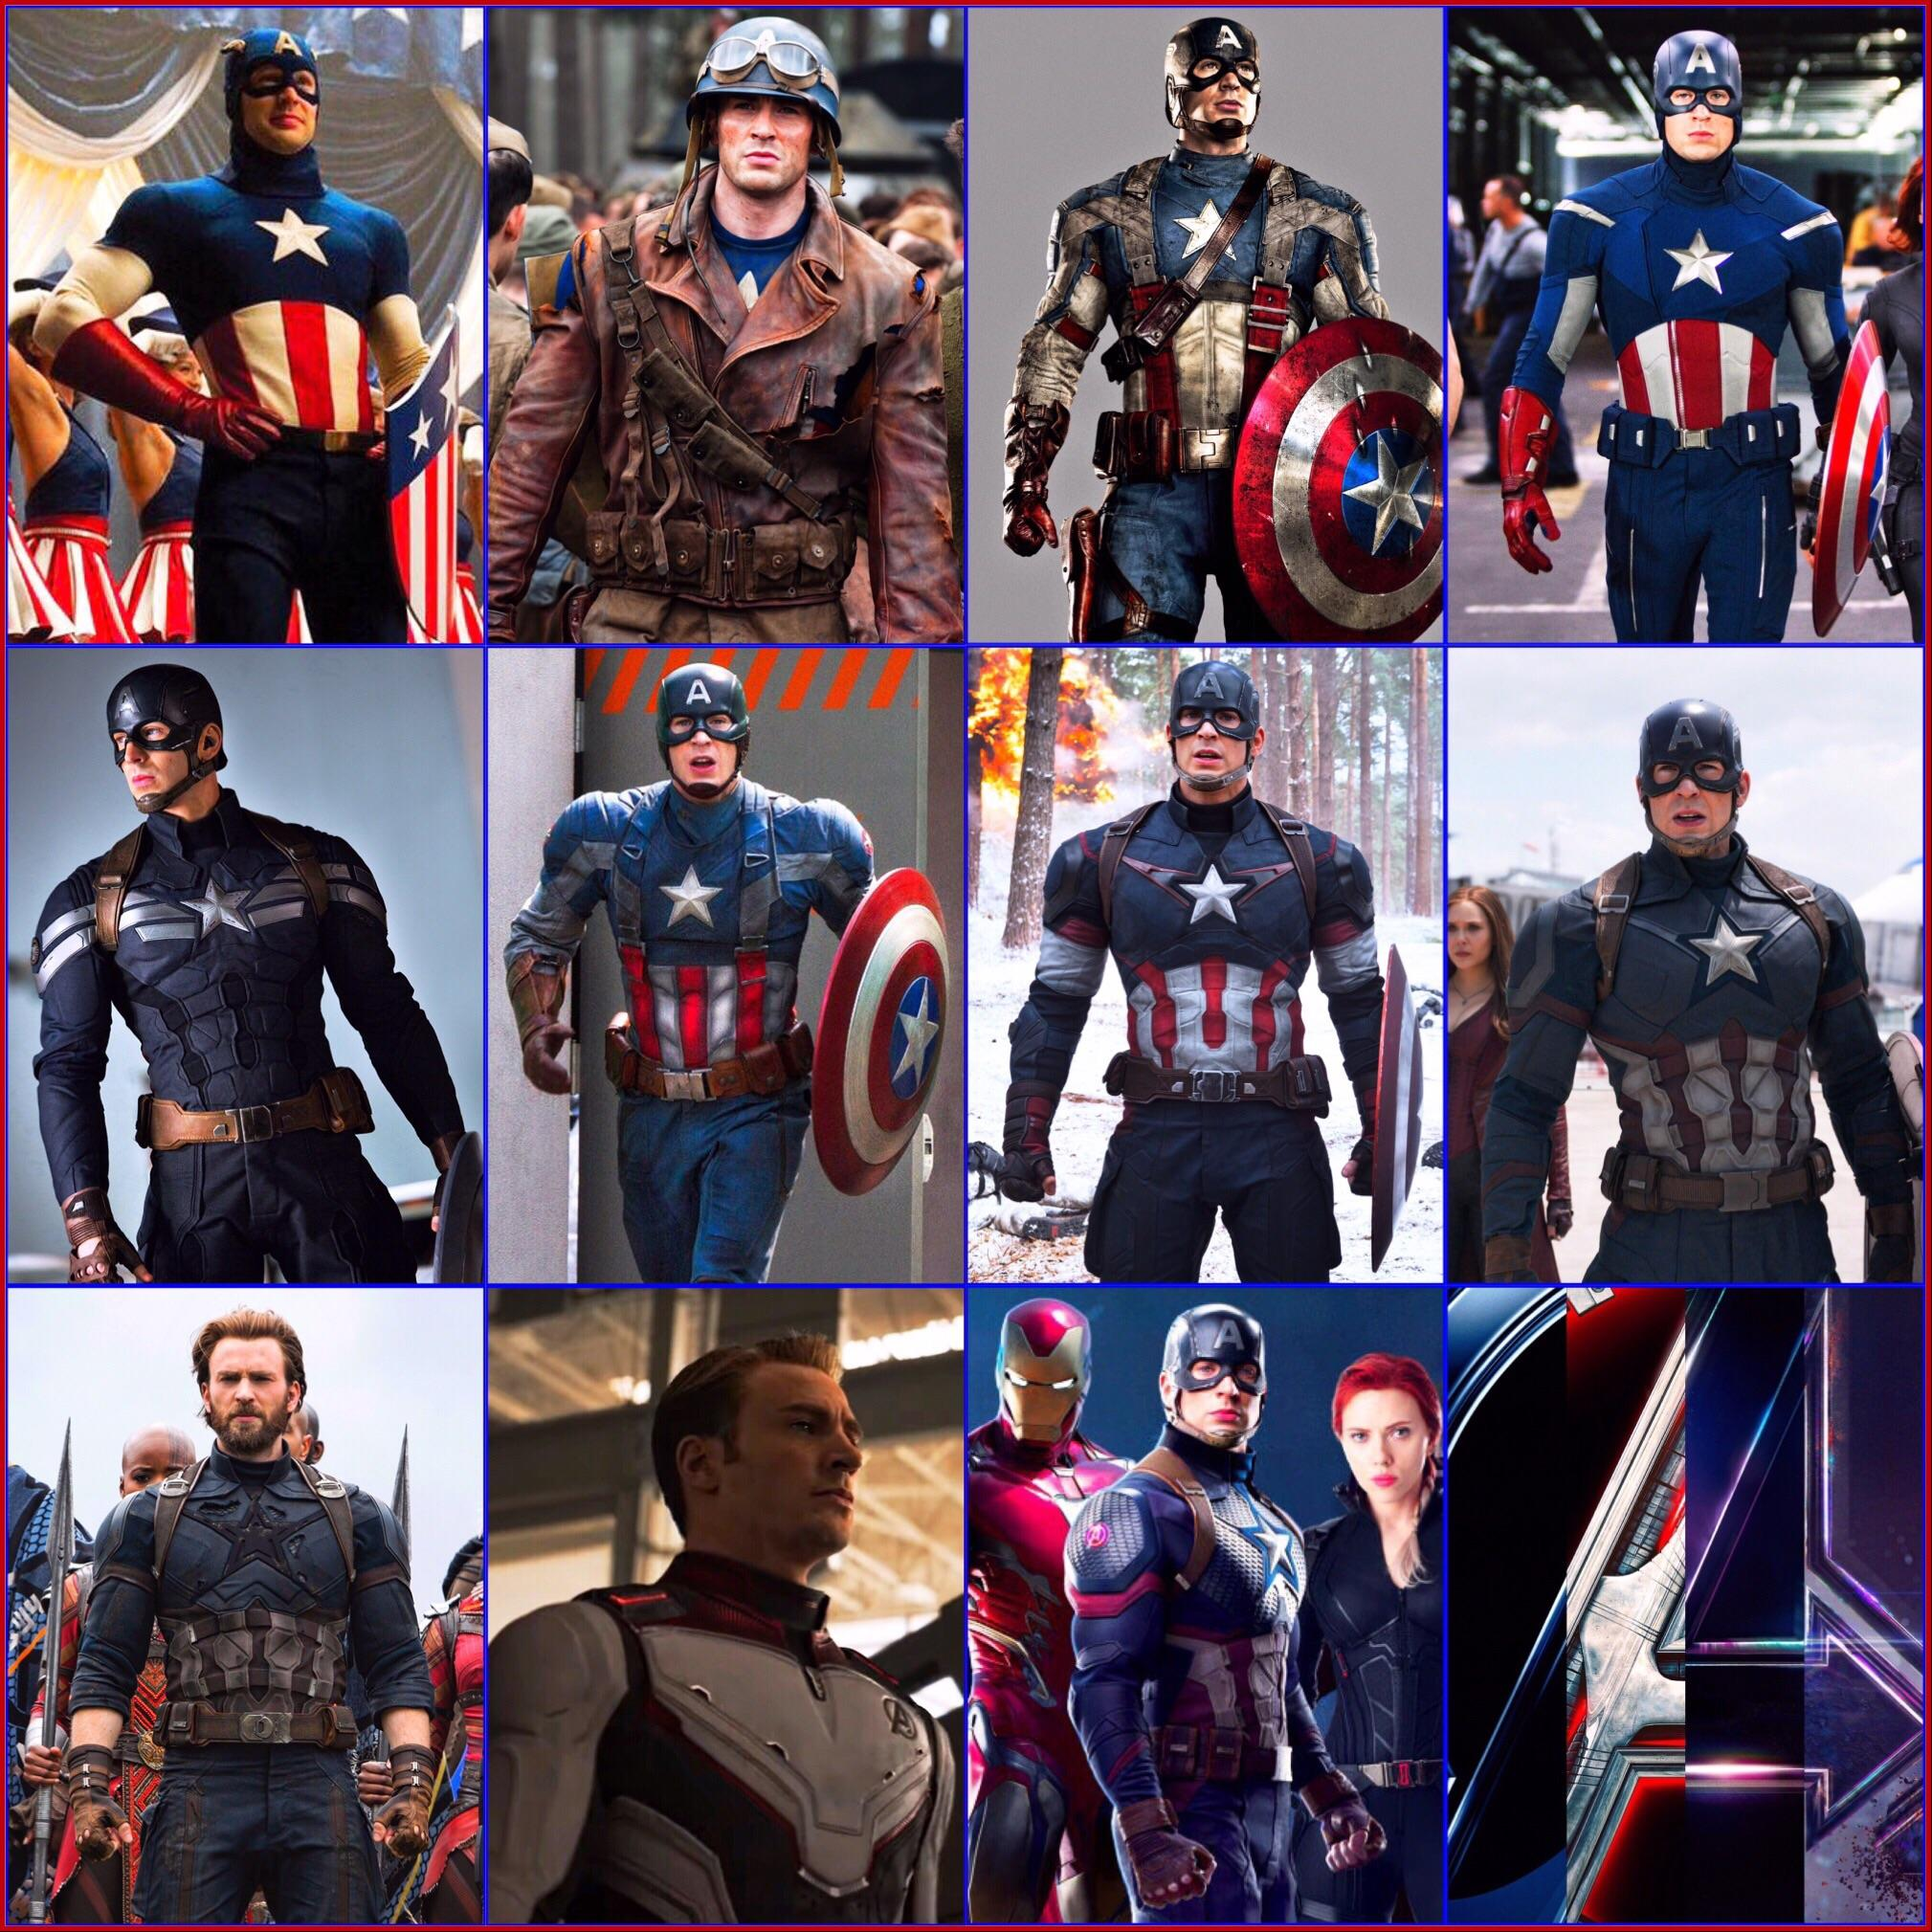 Is it true that Coolest Costume of Captain America Never Made It To The Movies?